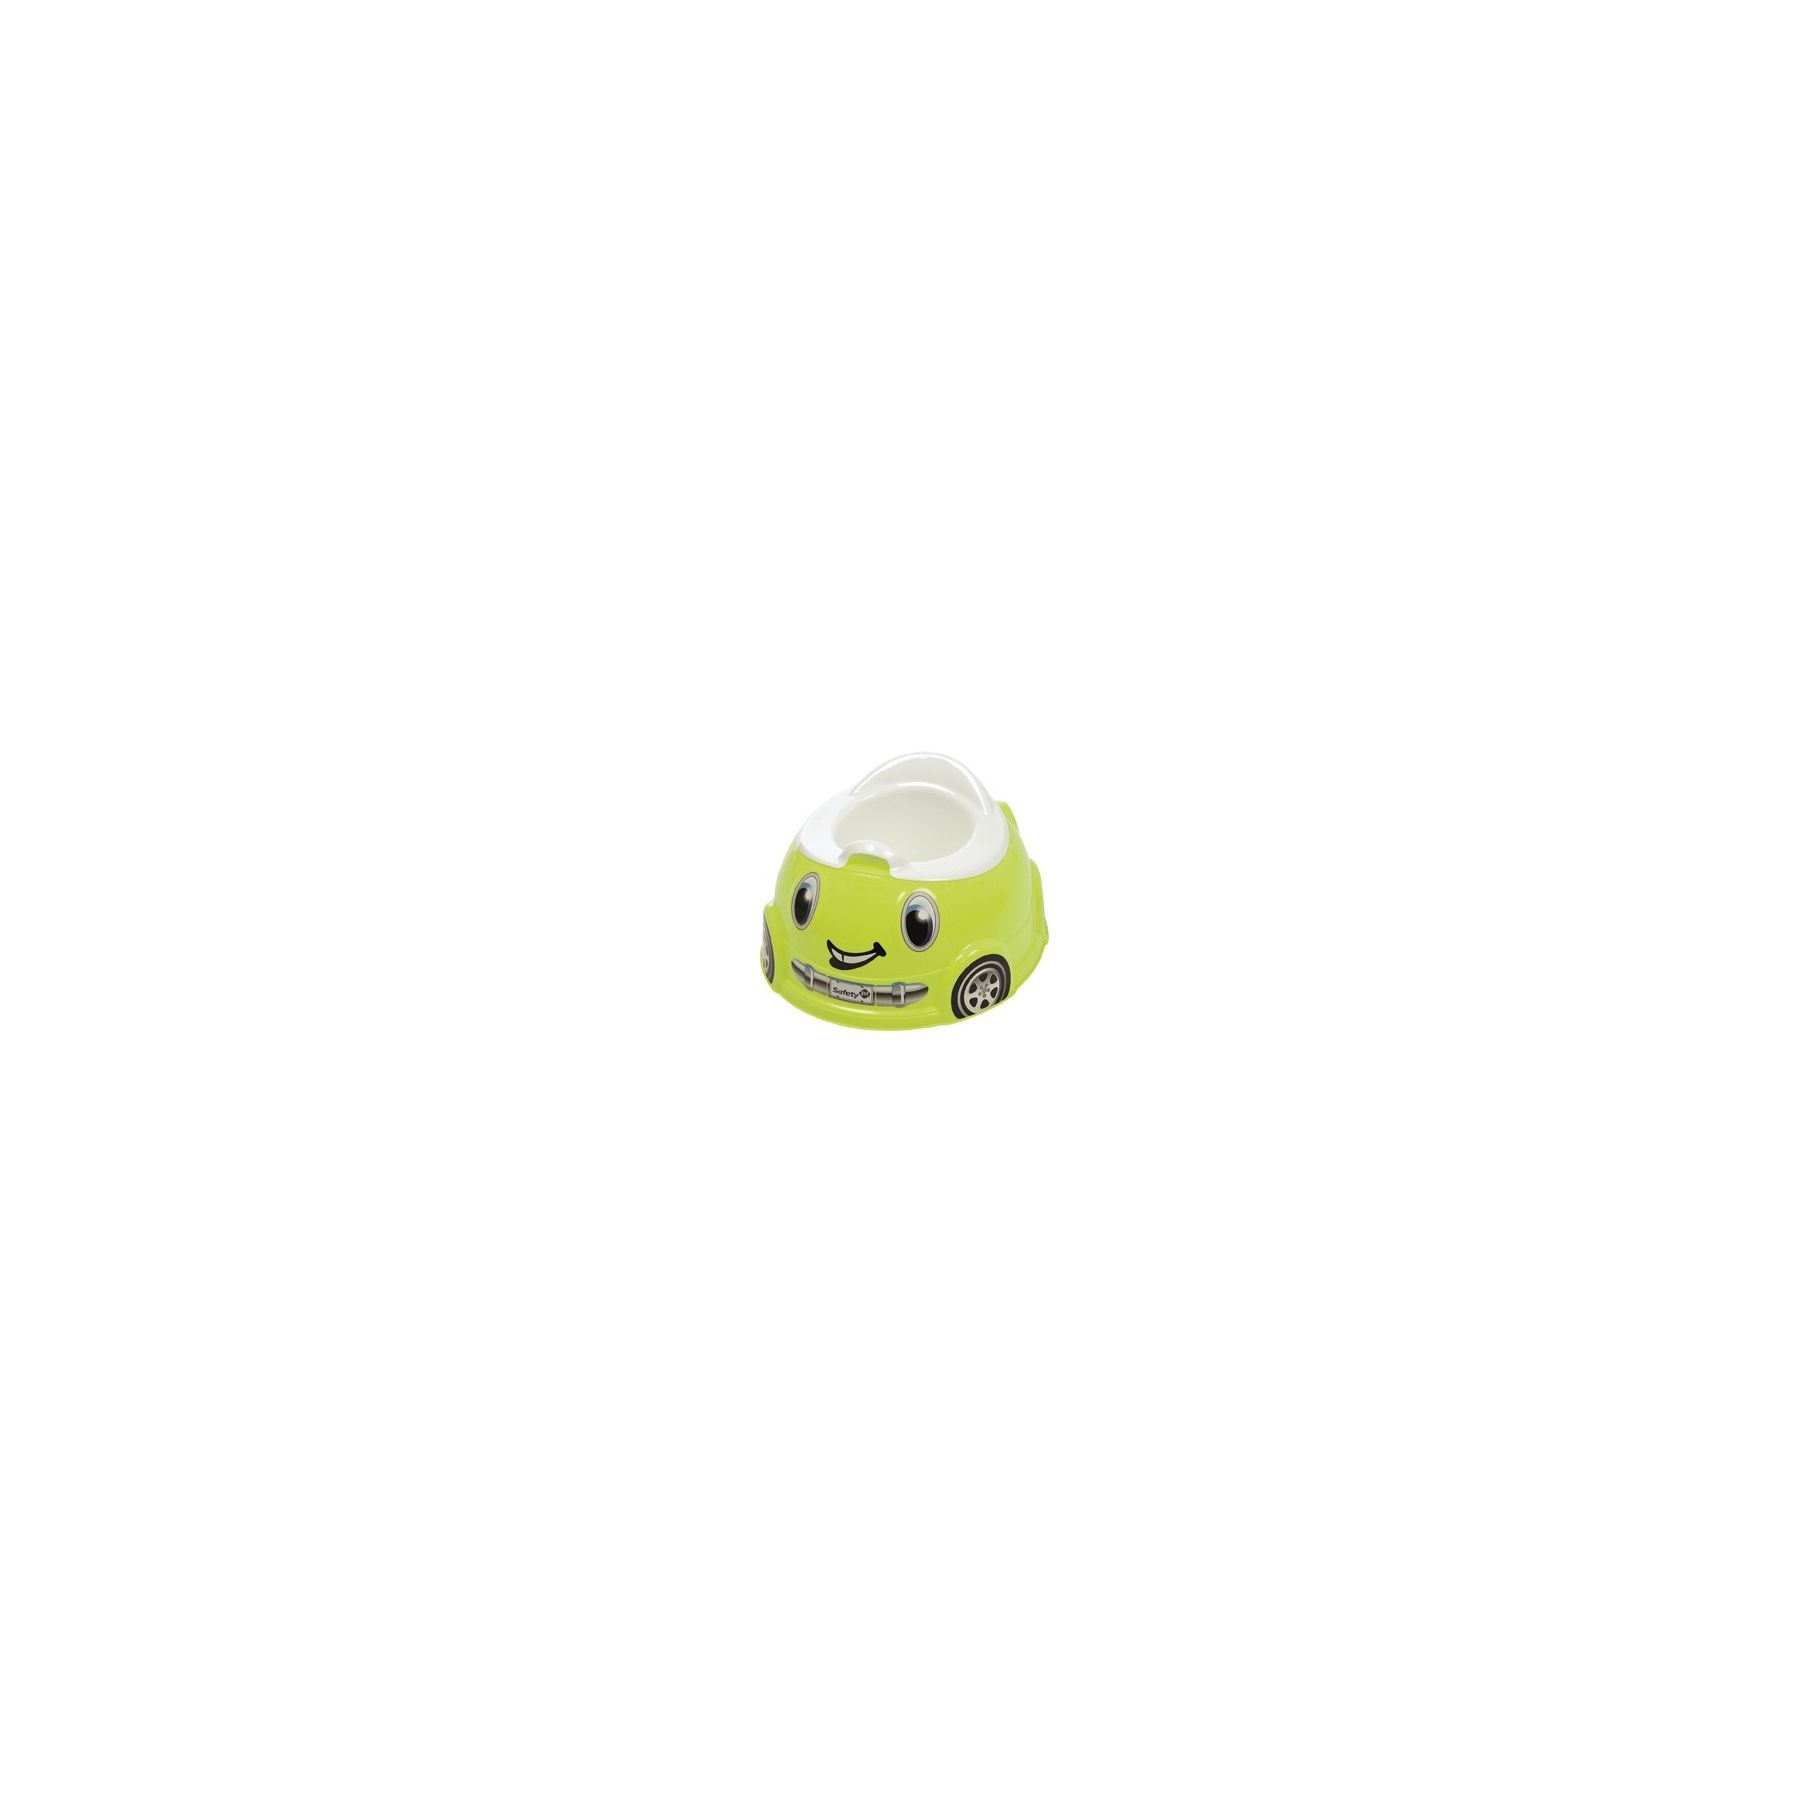 Pot enfant Voiture vert citron Safety 1st